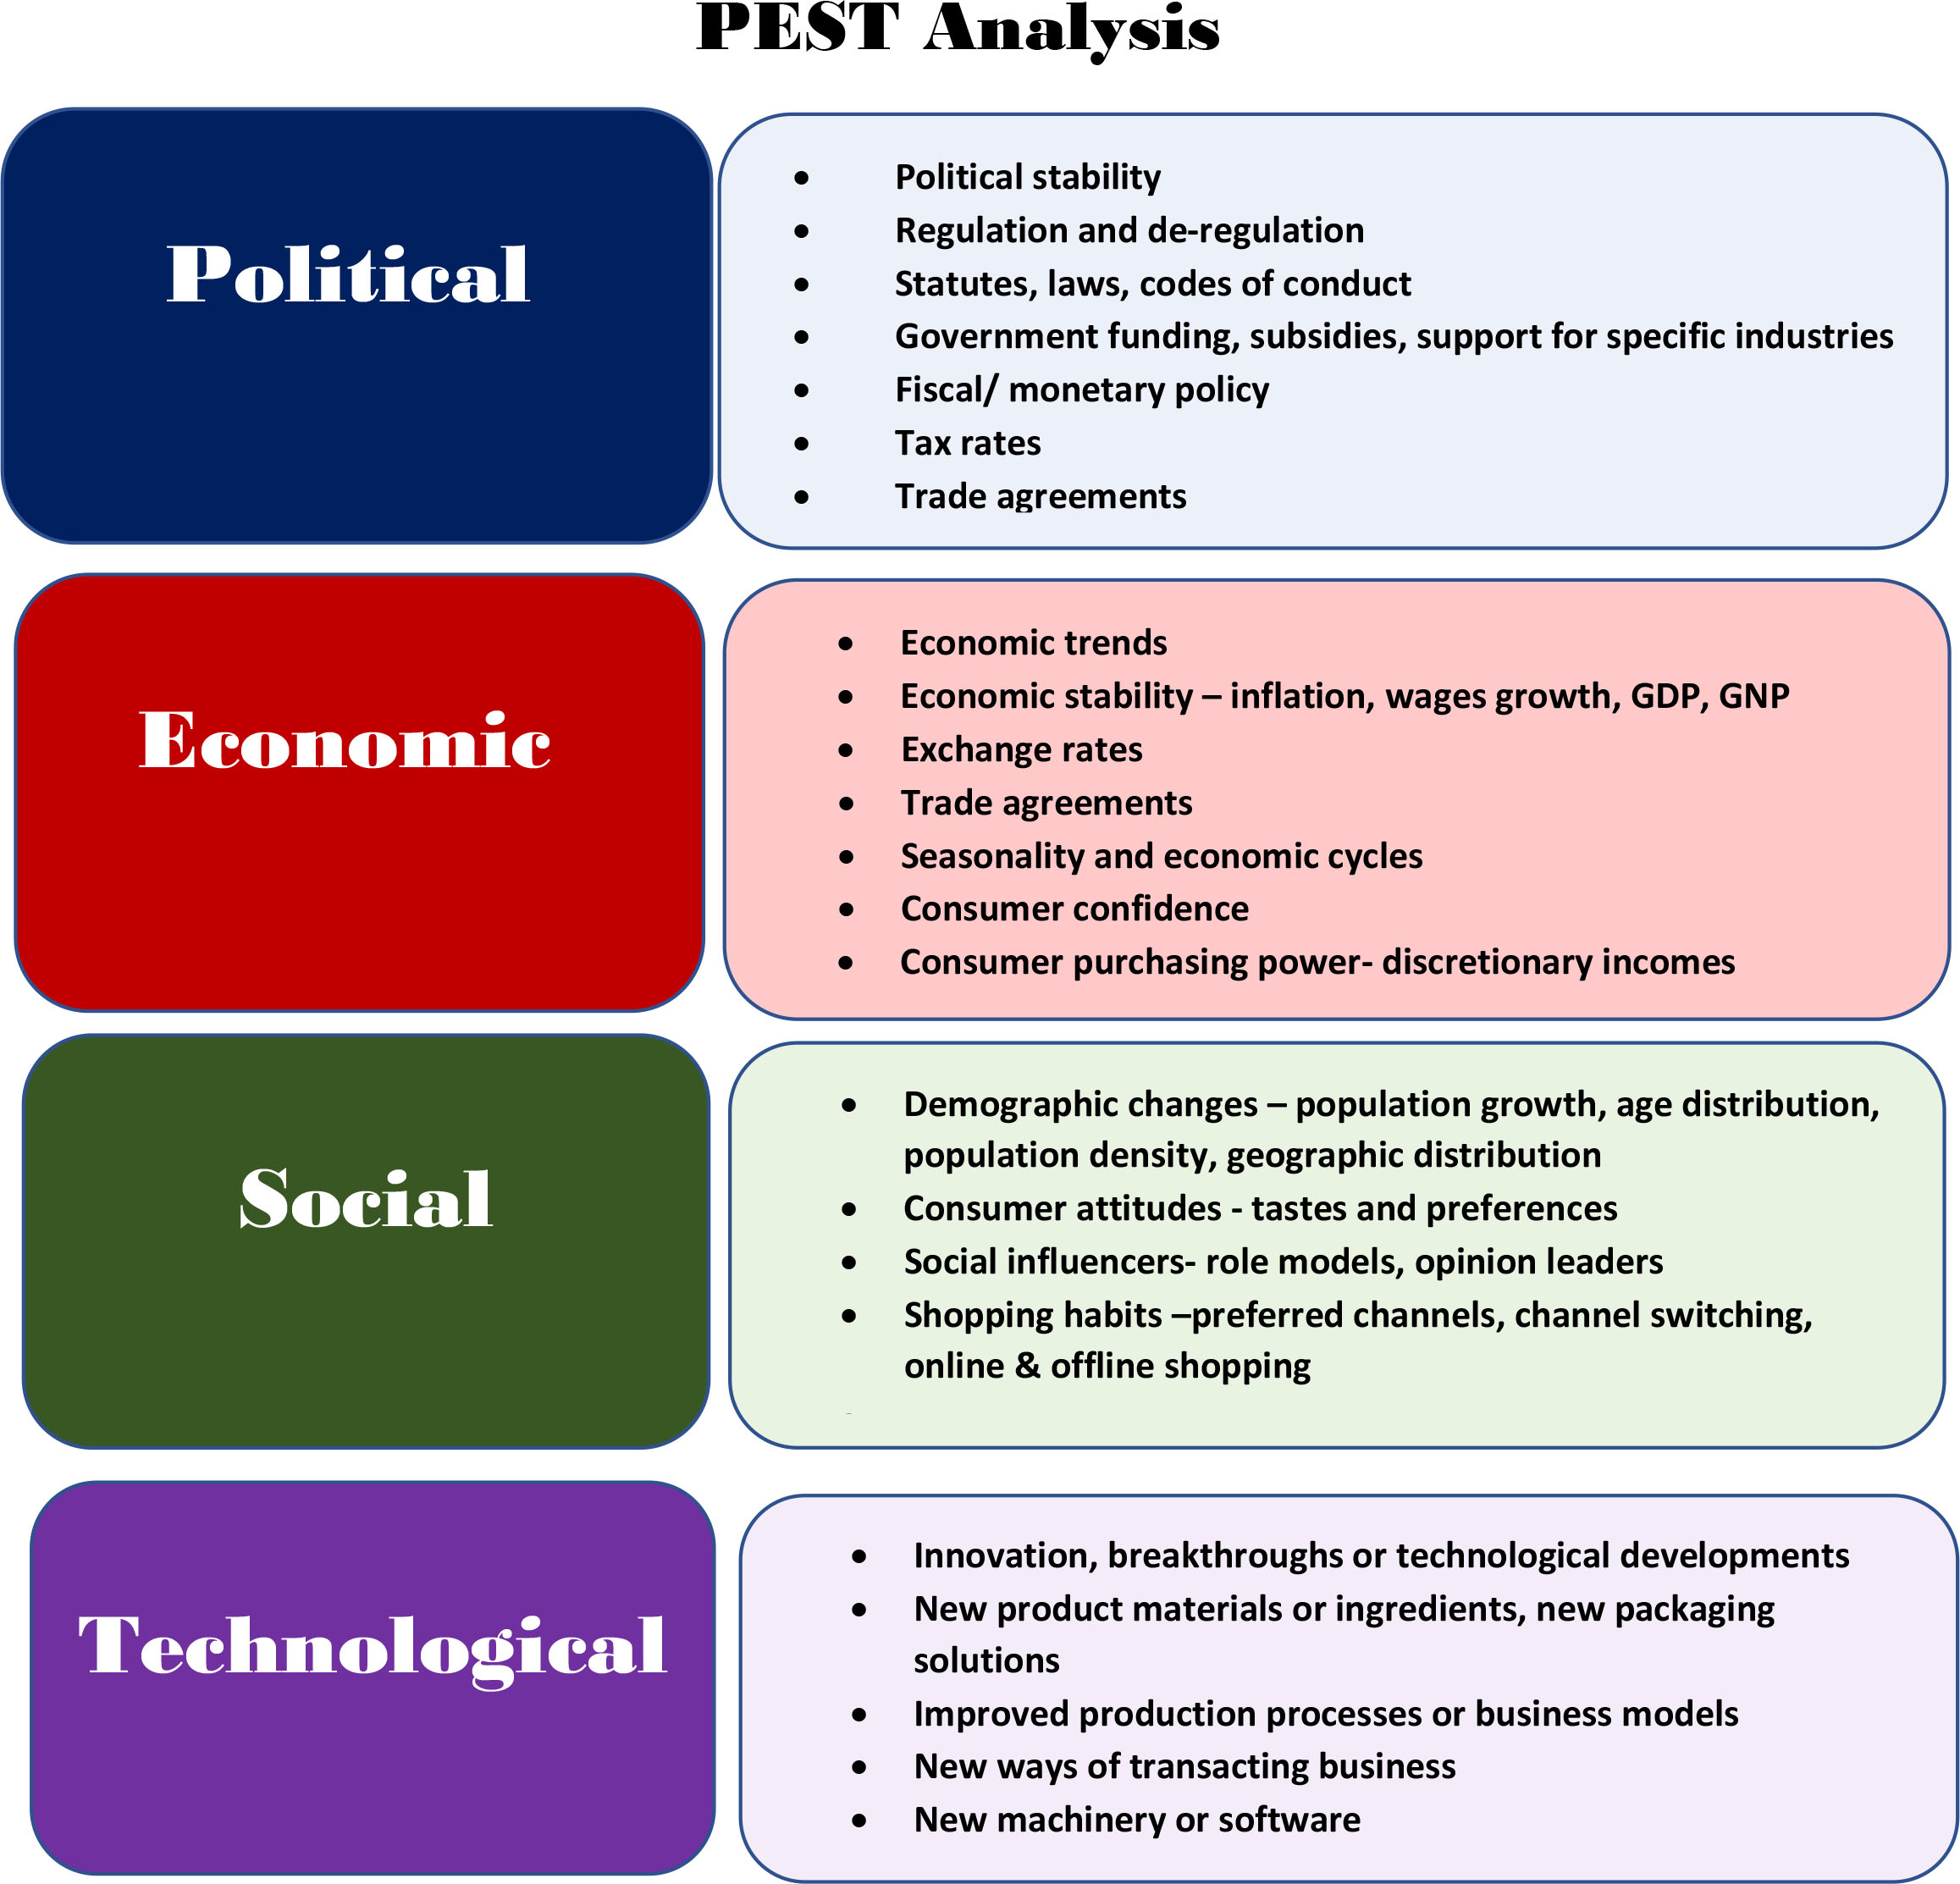 קובץ Pest Analysis Jpg ויקיפדיה